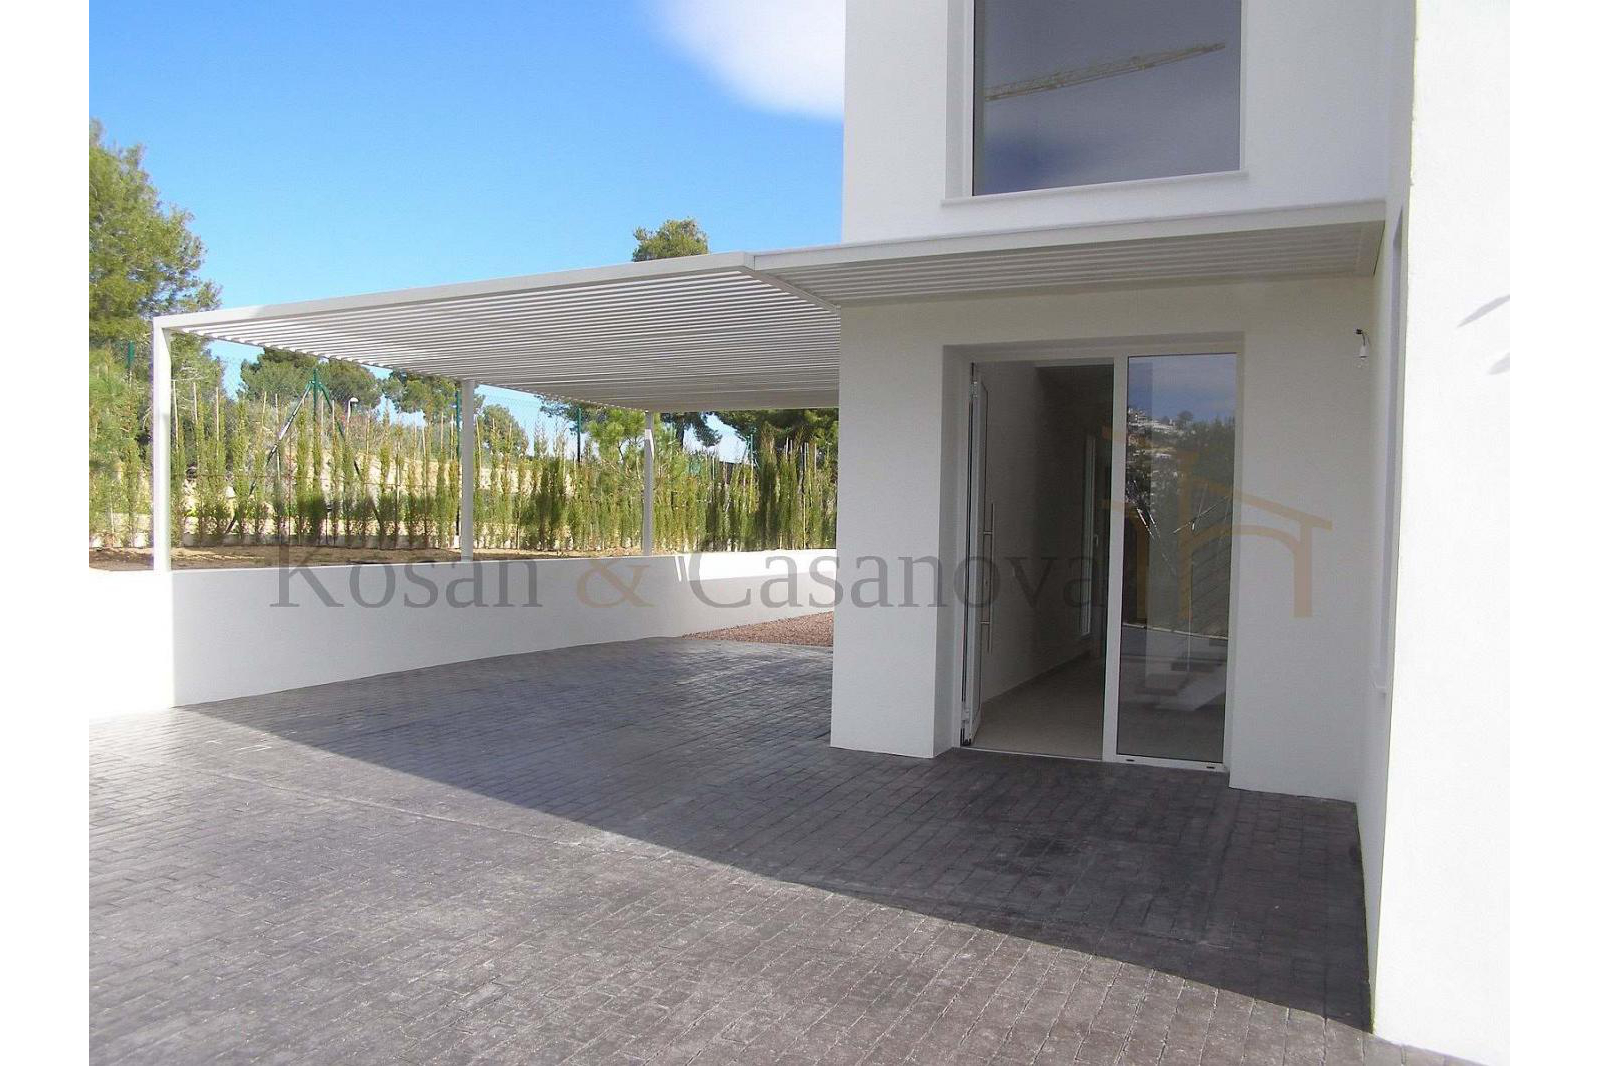 Moraira / Teulada- A contemporary Villa, bright and airy, with openspaces, ideal for modern living pic 5